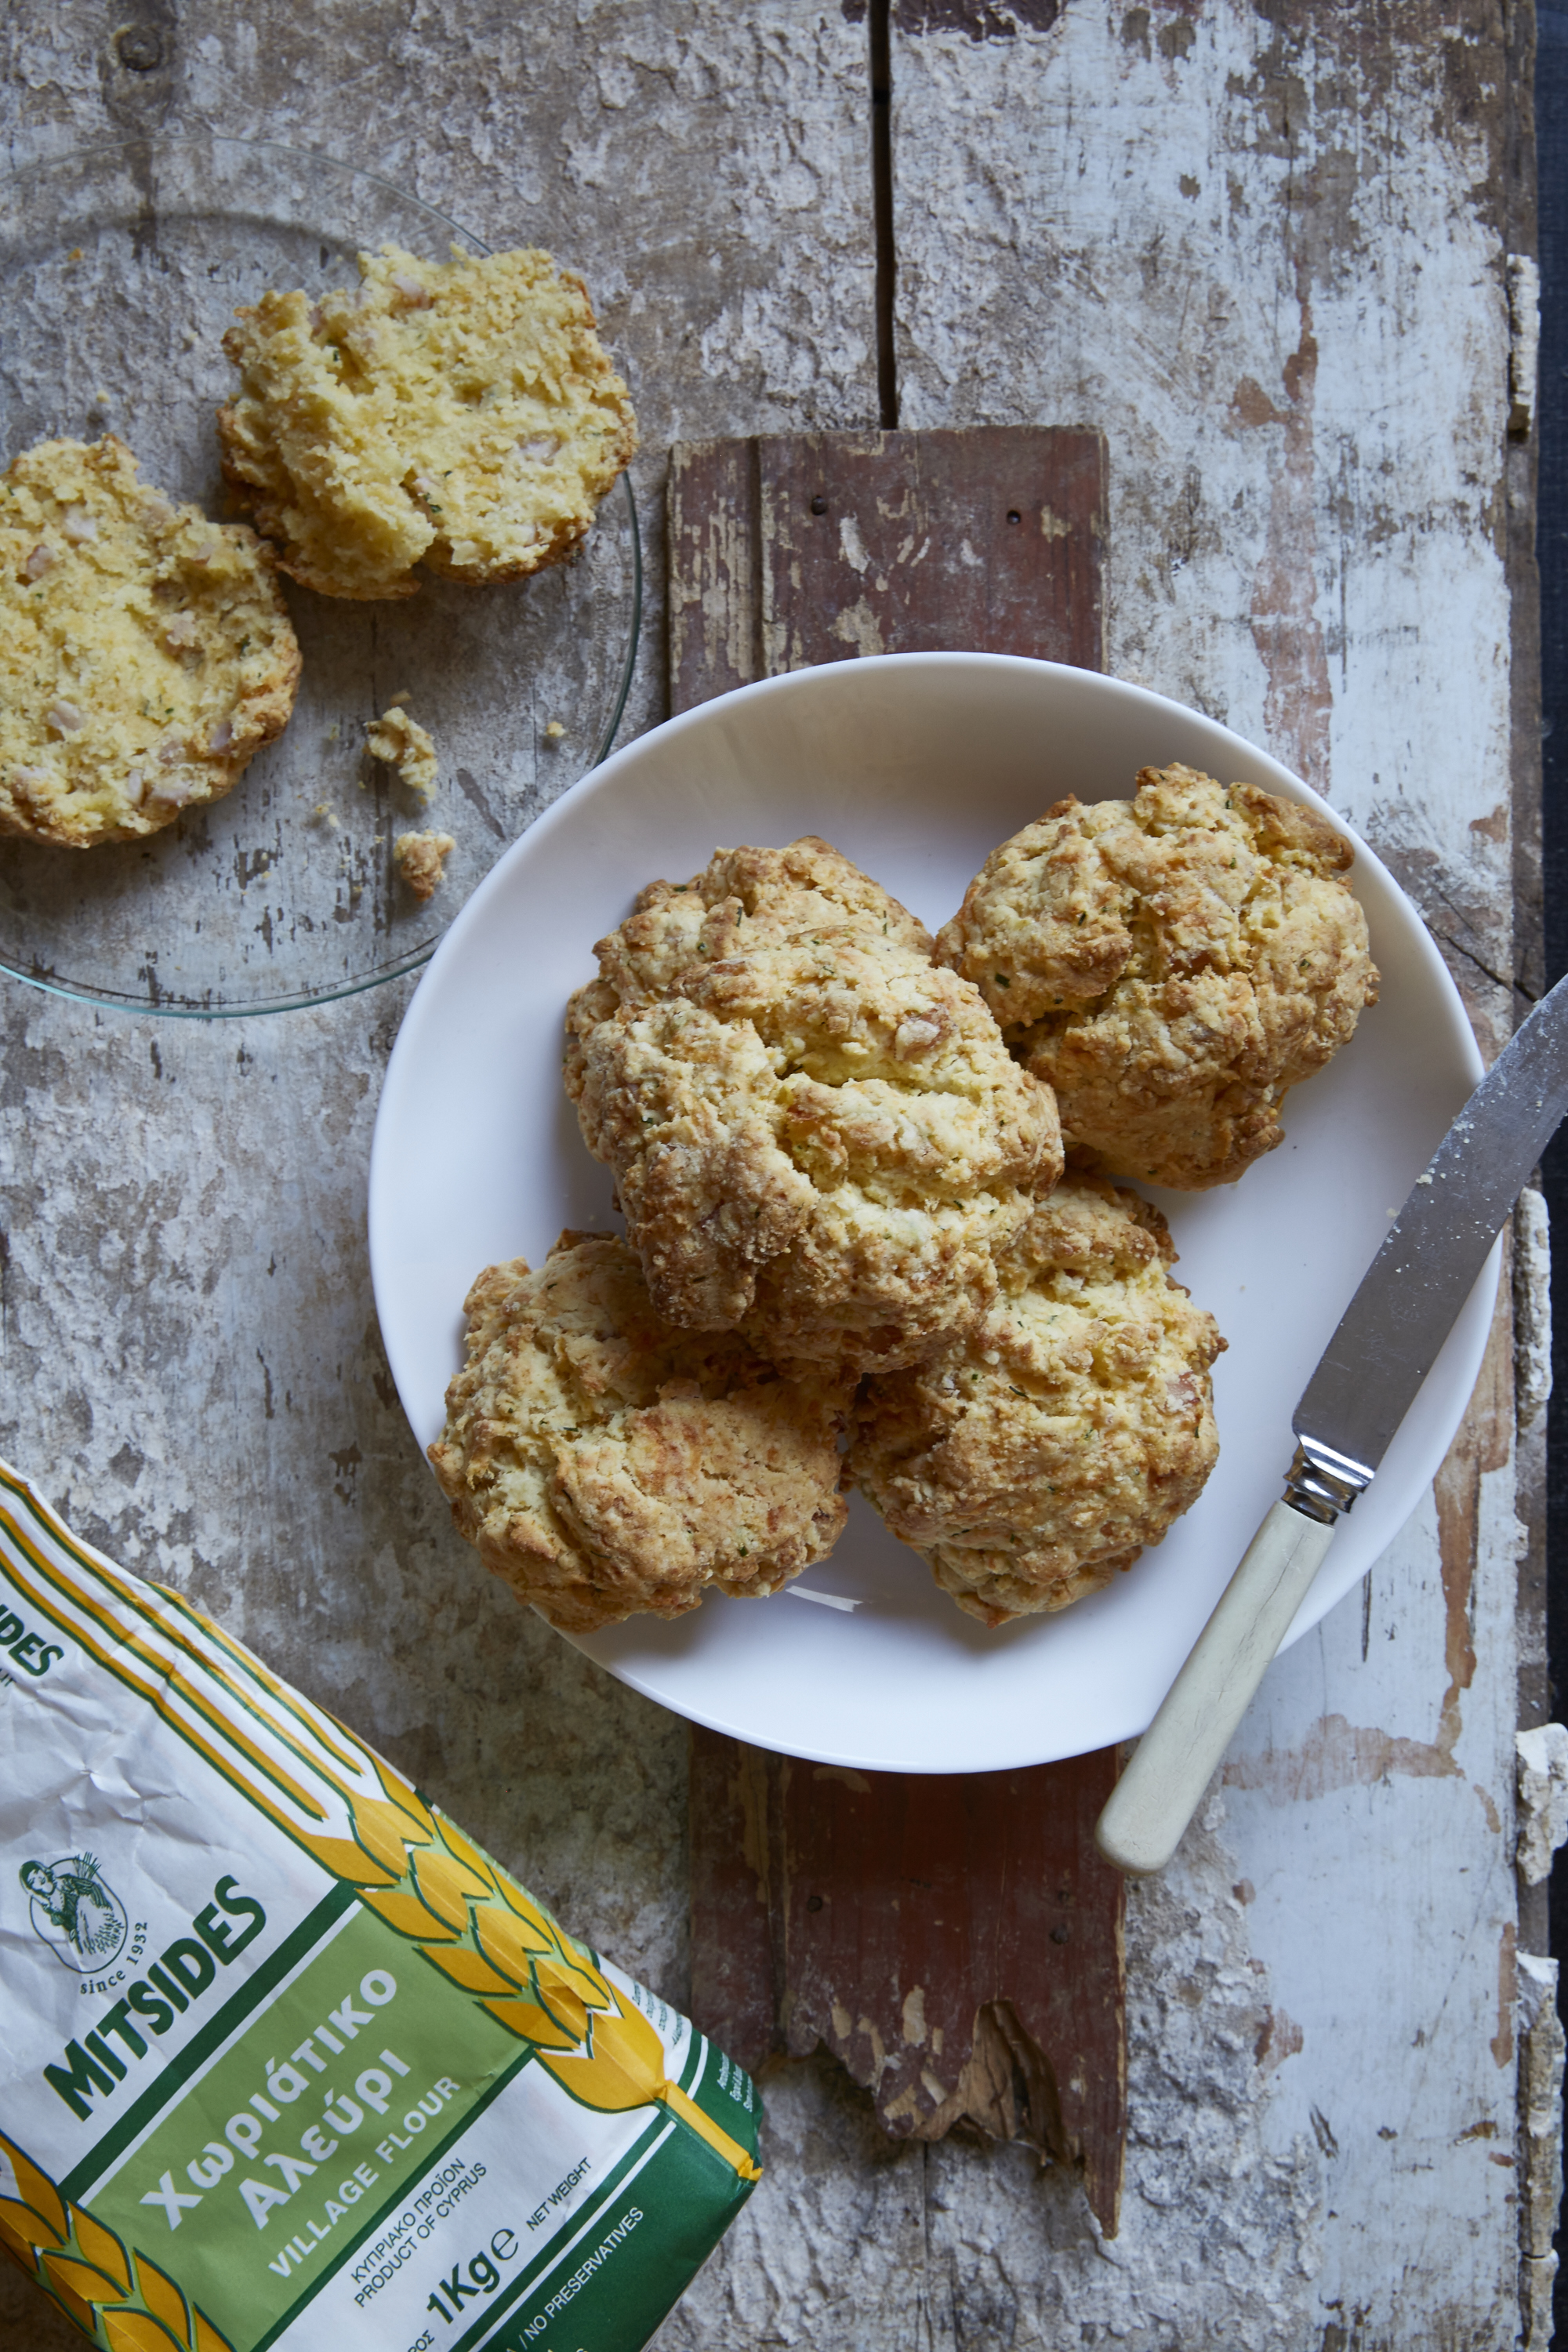 mitsides-scones-september-mitsides-lountza-scones4321